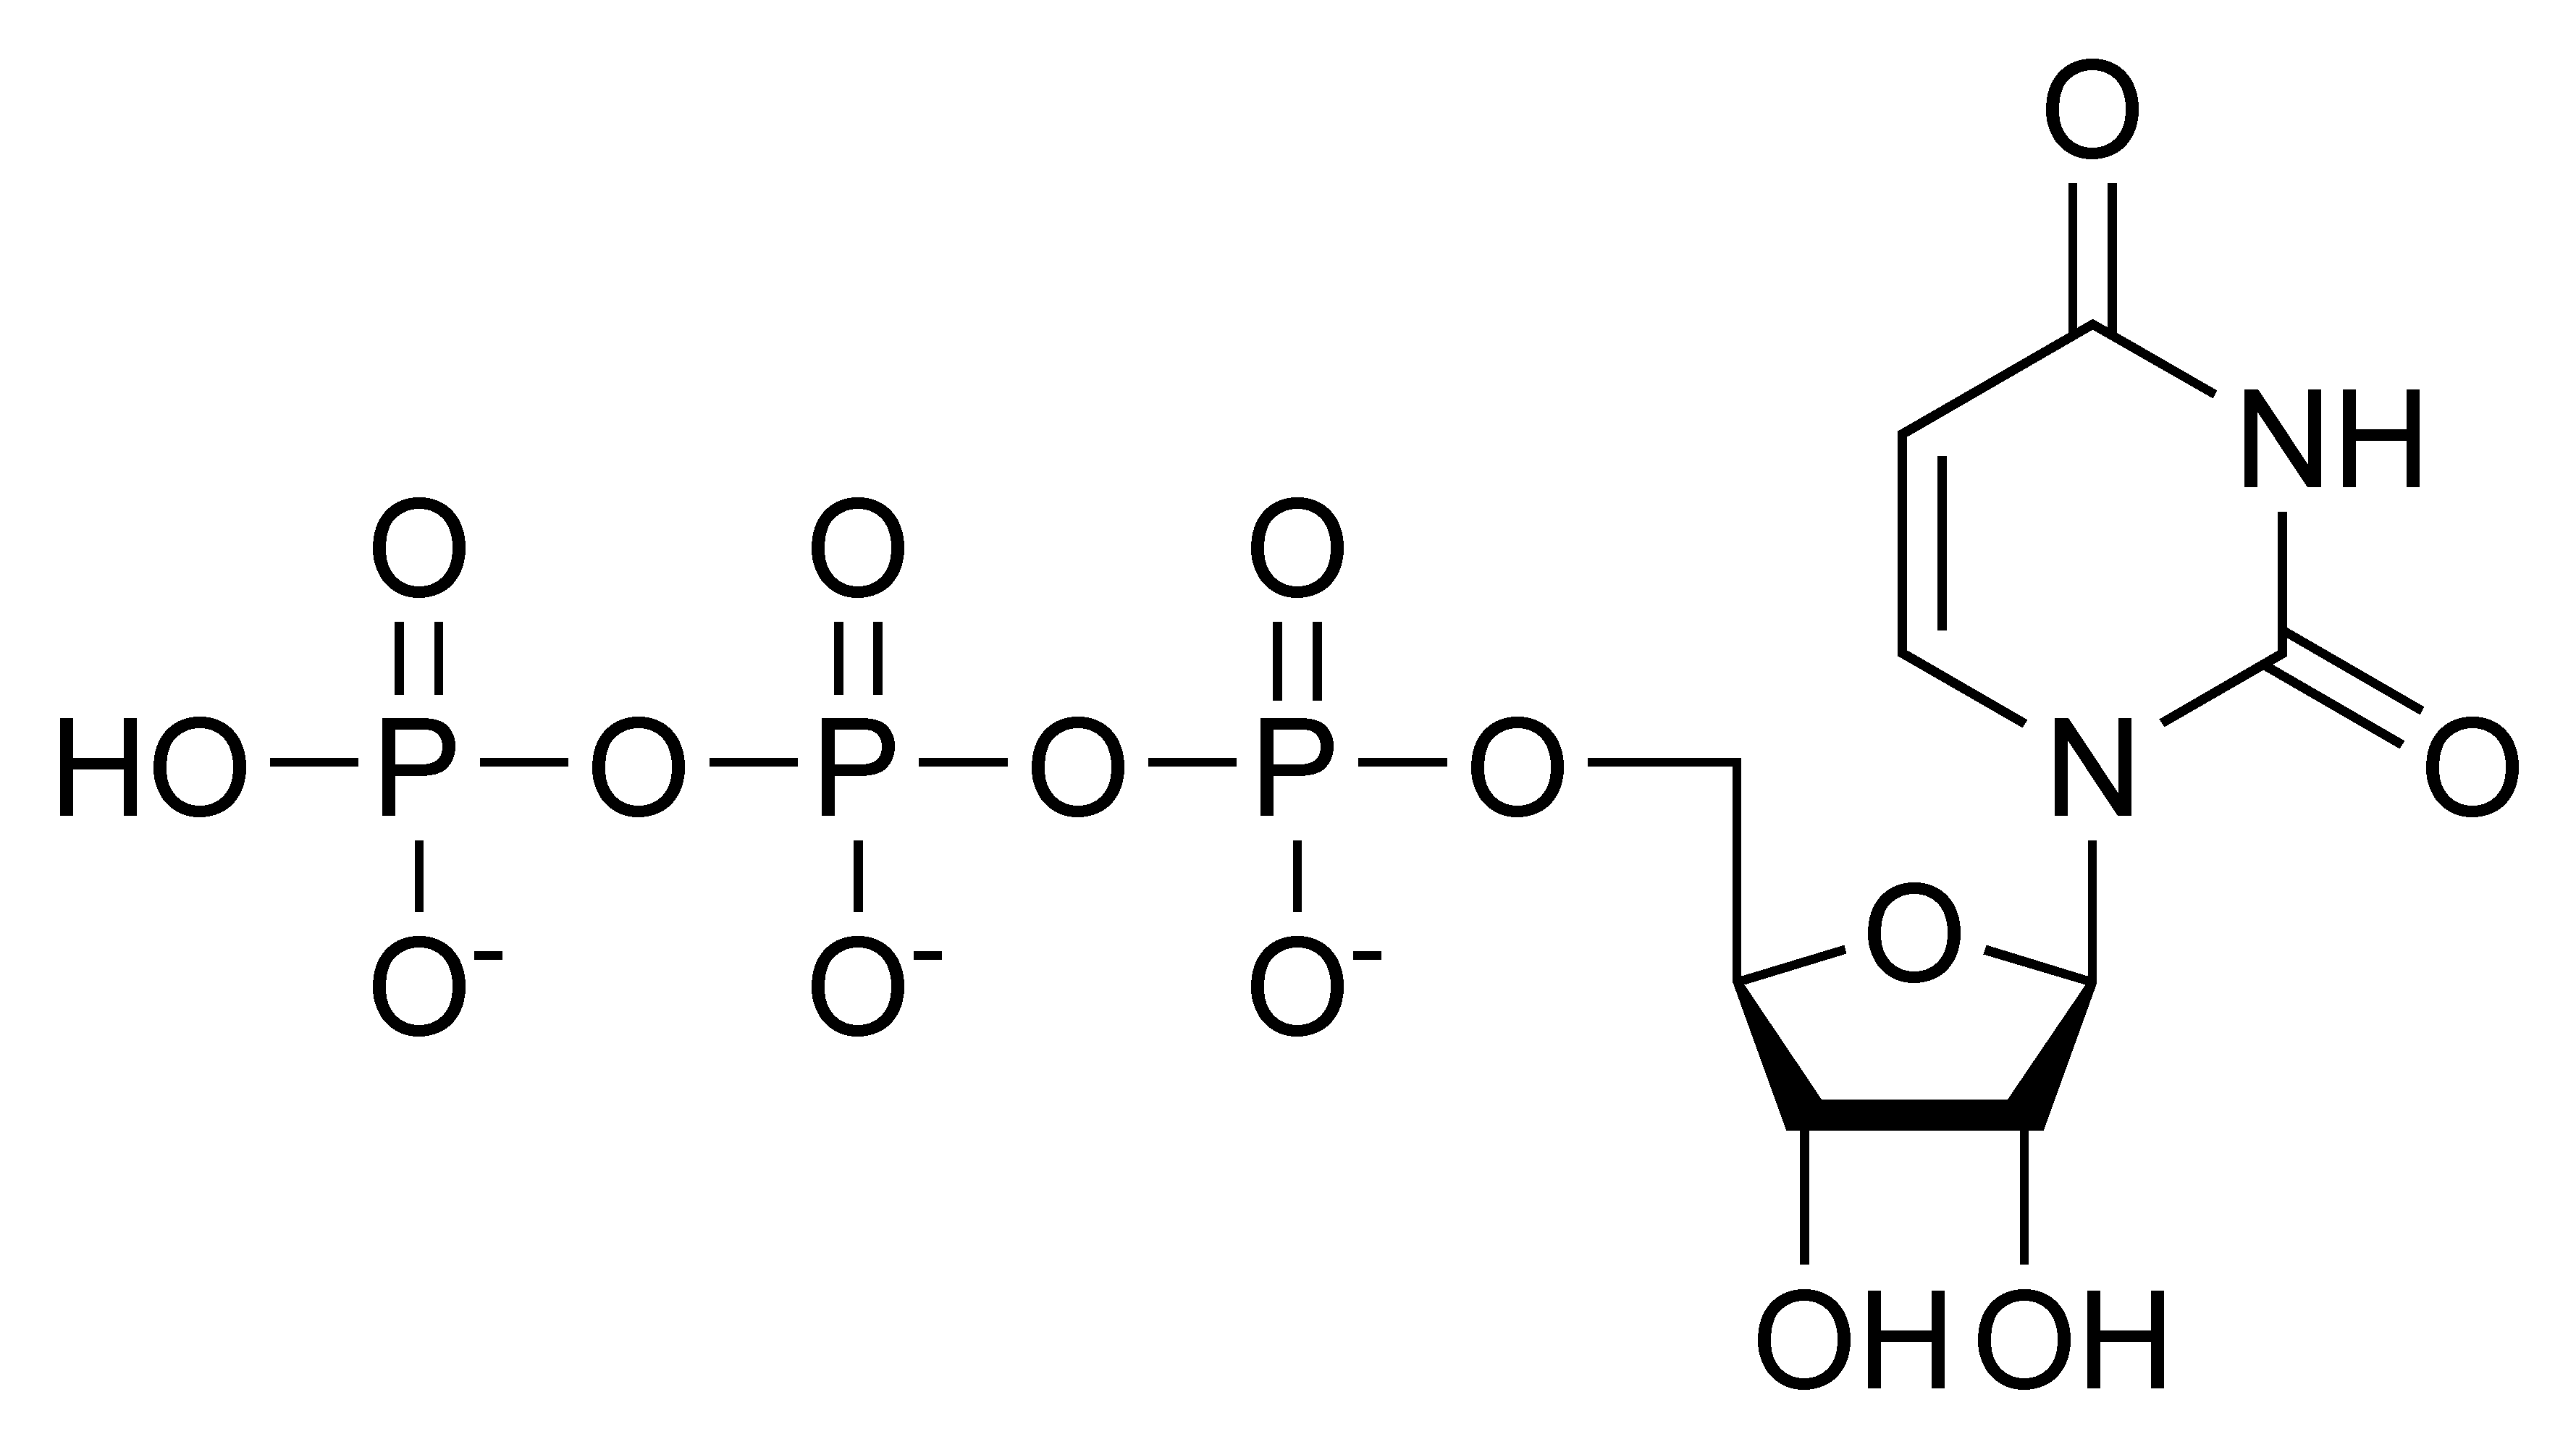 Chemical structure of uridine triphosphate